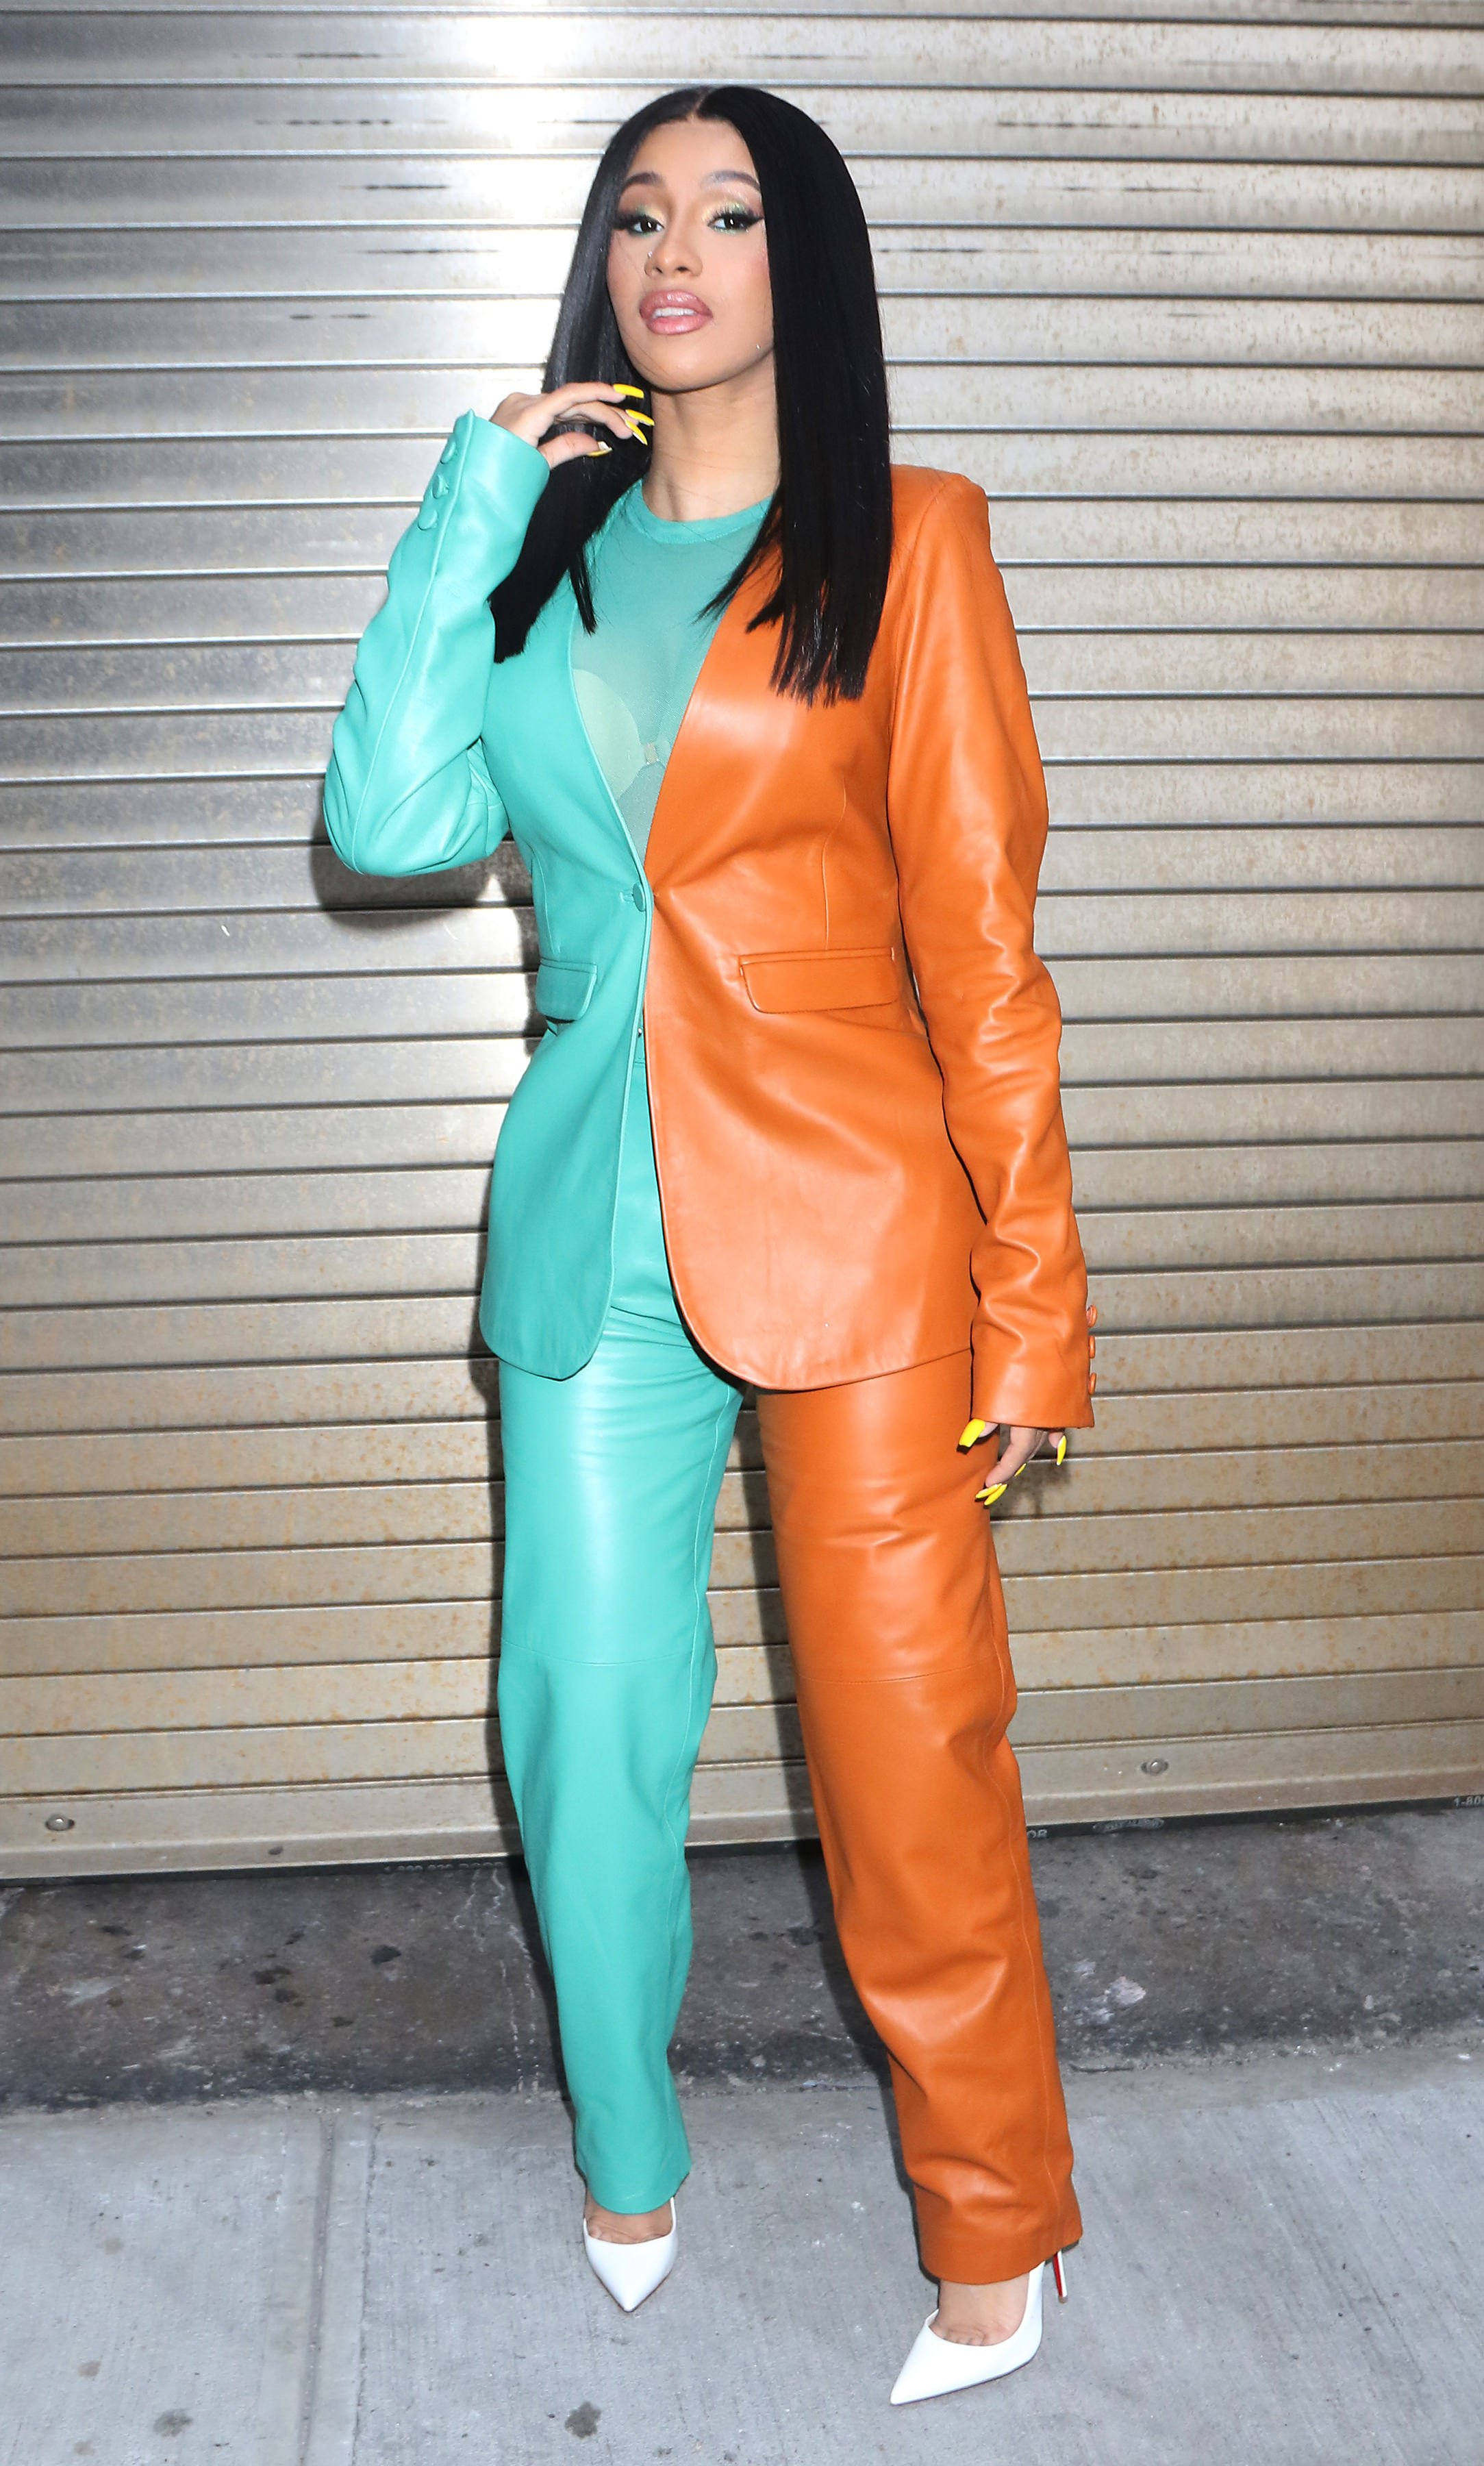 Cardi B makes an appearance in New York City on October 10, 2019 | Photo: Getty Images